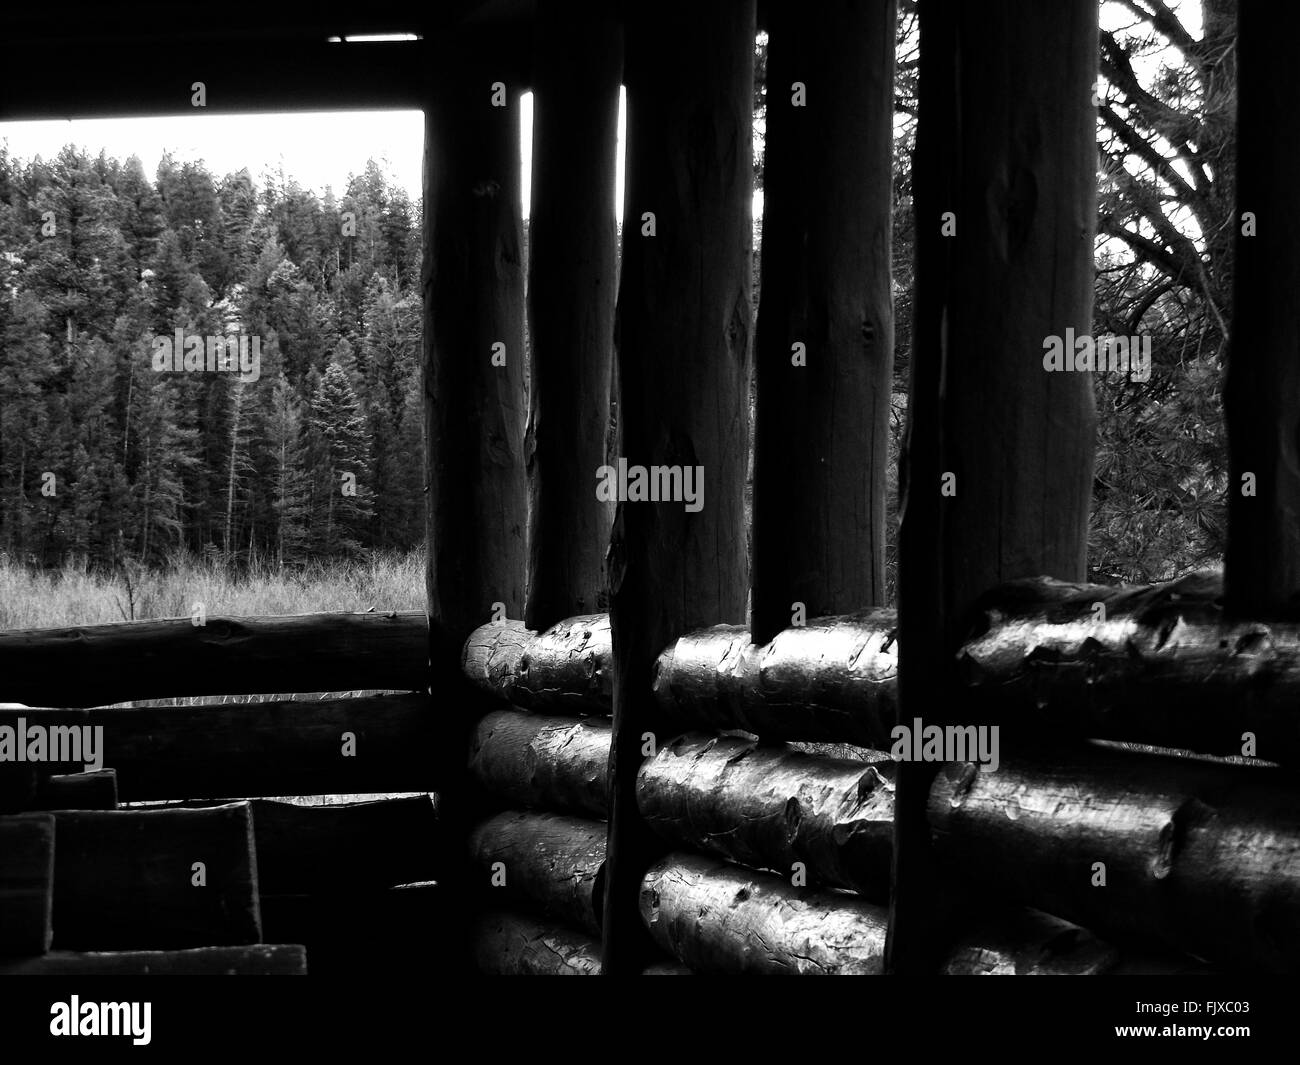 Interior Of Log Cabin - Stock Image